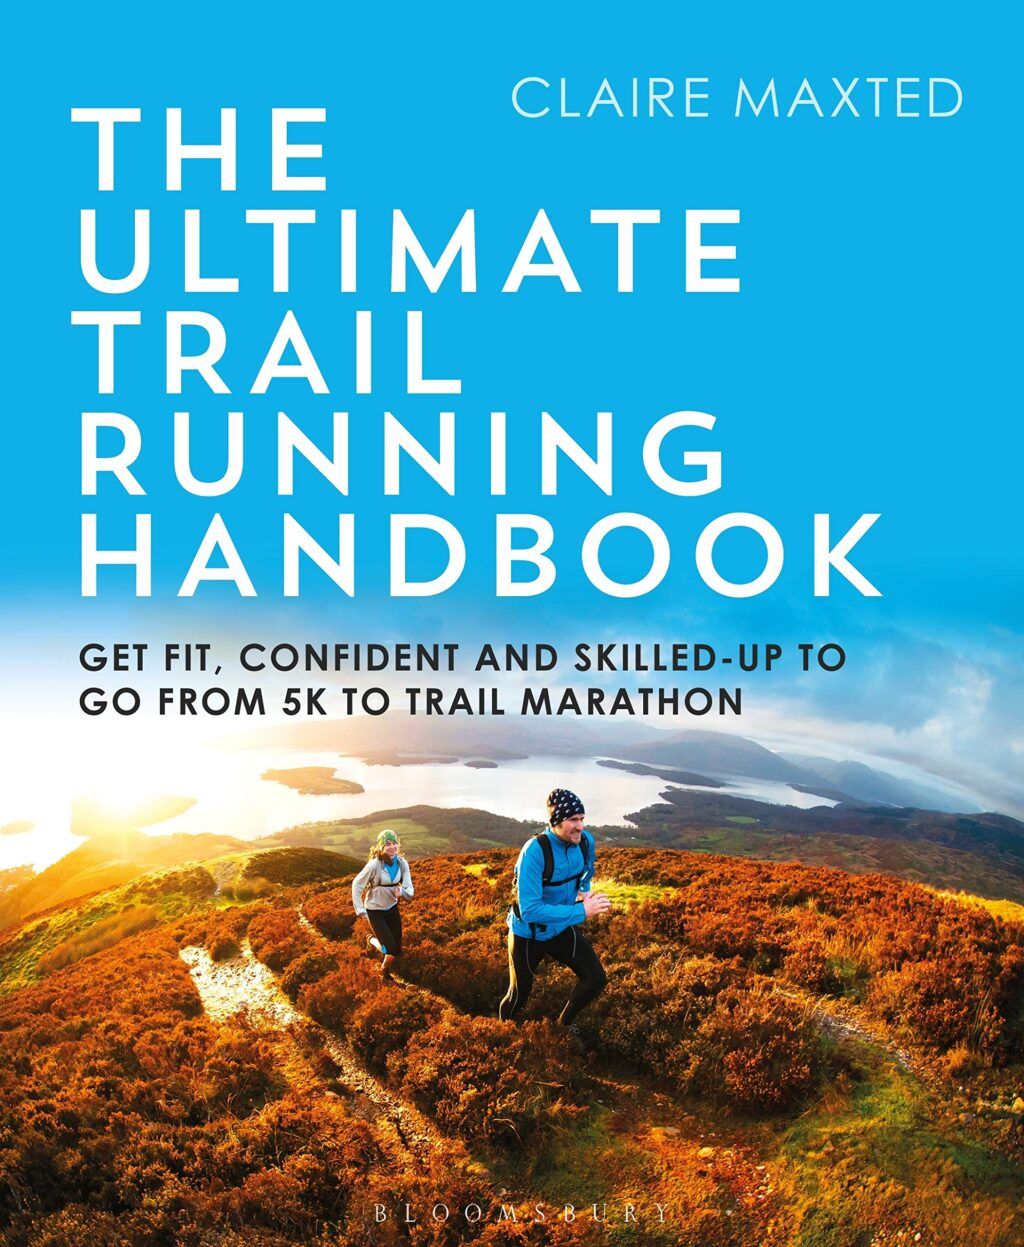 the-ultimate-trail-running-handbook-get-fit-confident-and-skilled-up-to-go-from-5k-to-50k